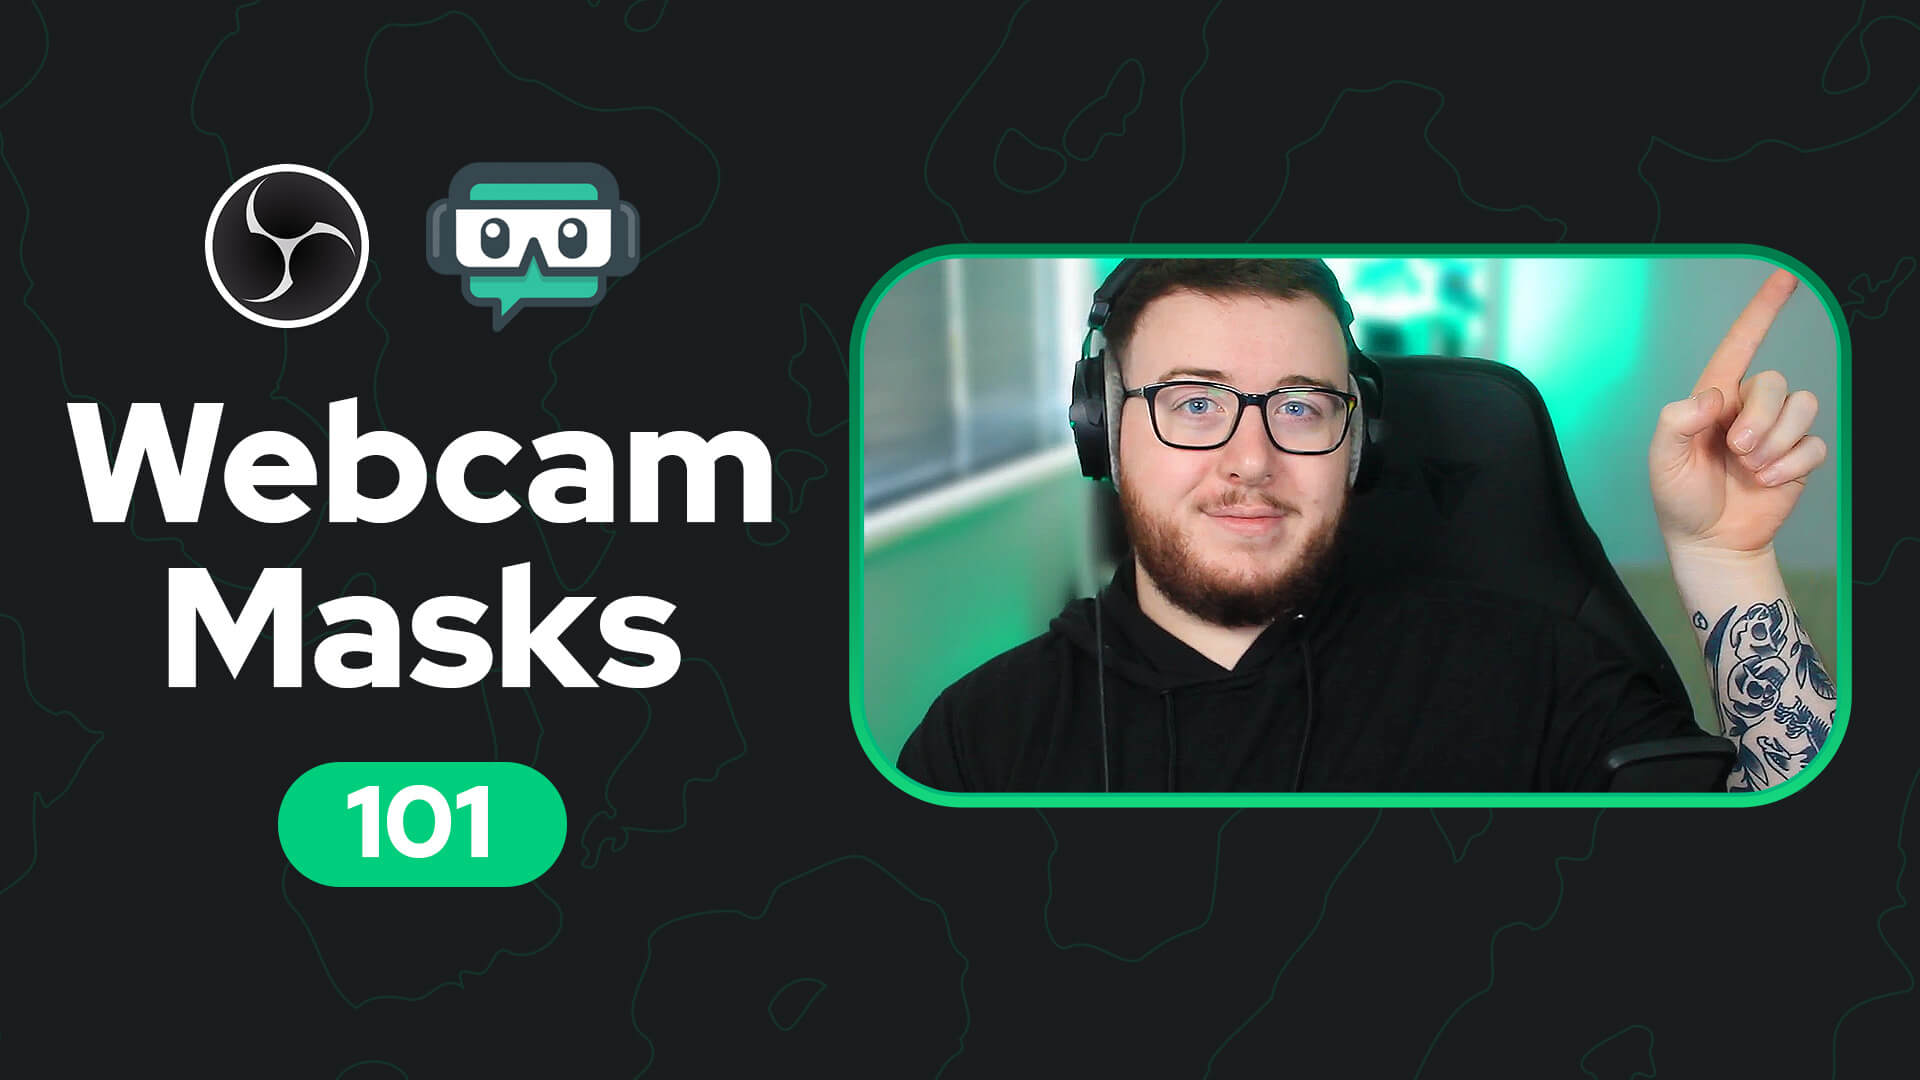 webcam masks 101 with streamer cam and obs streamlabs logos